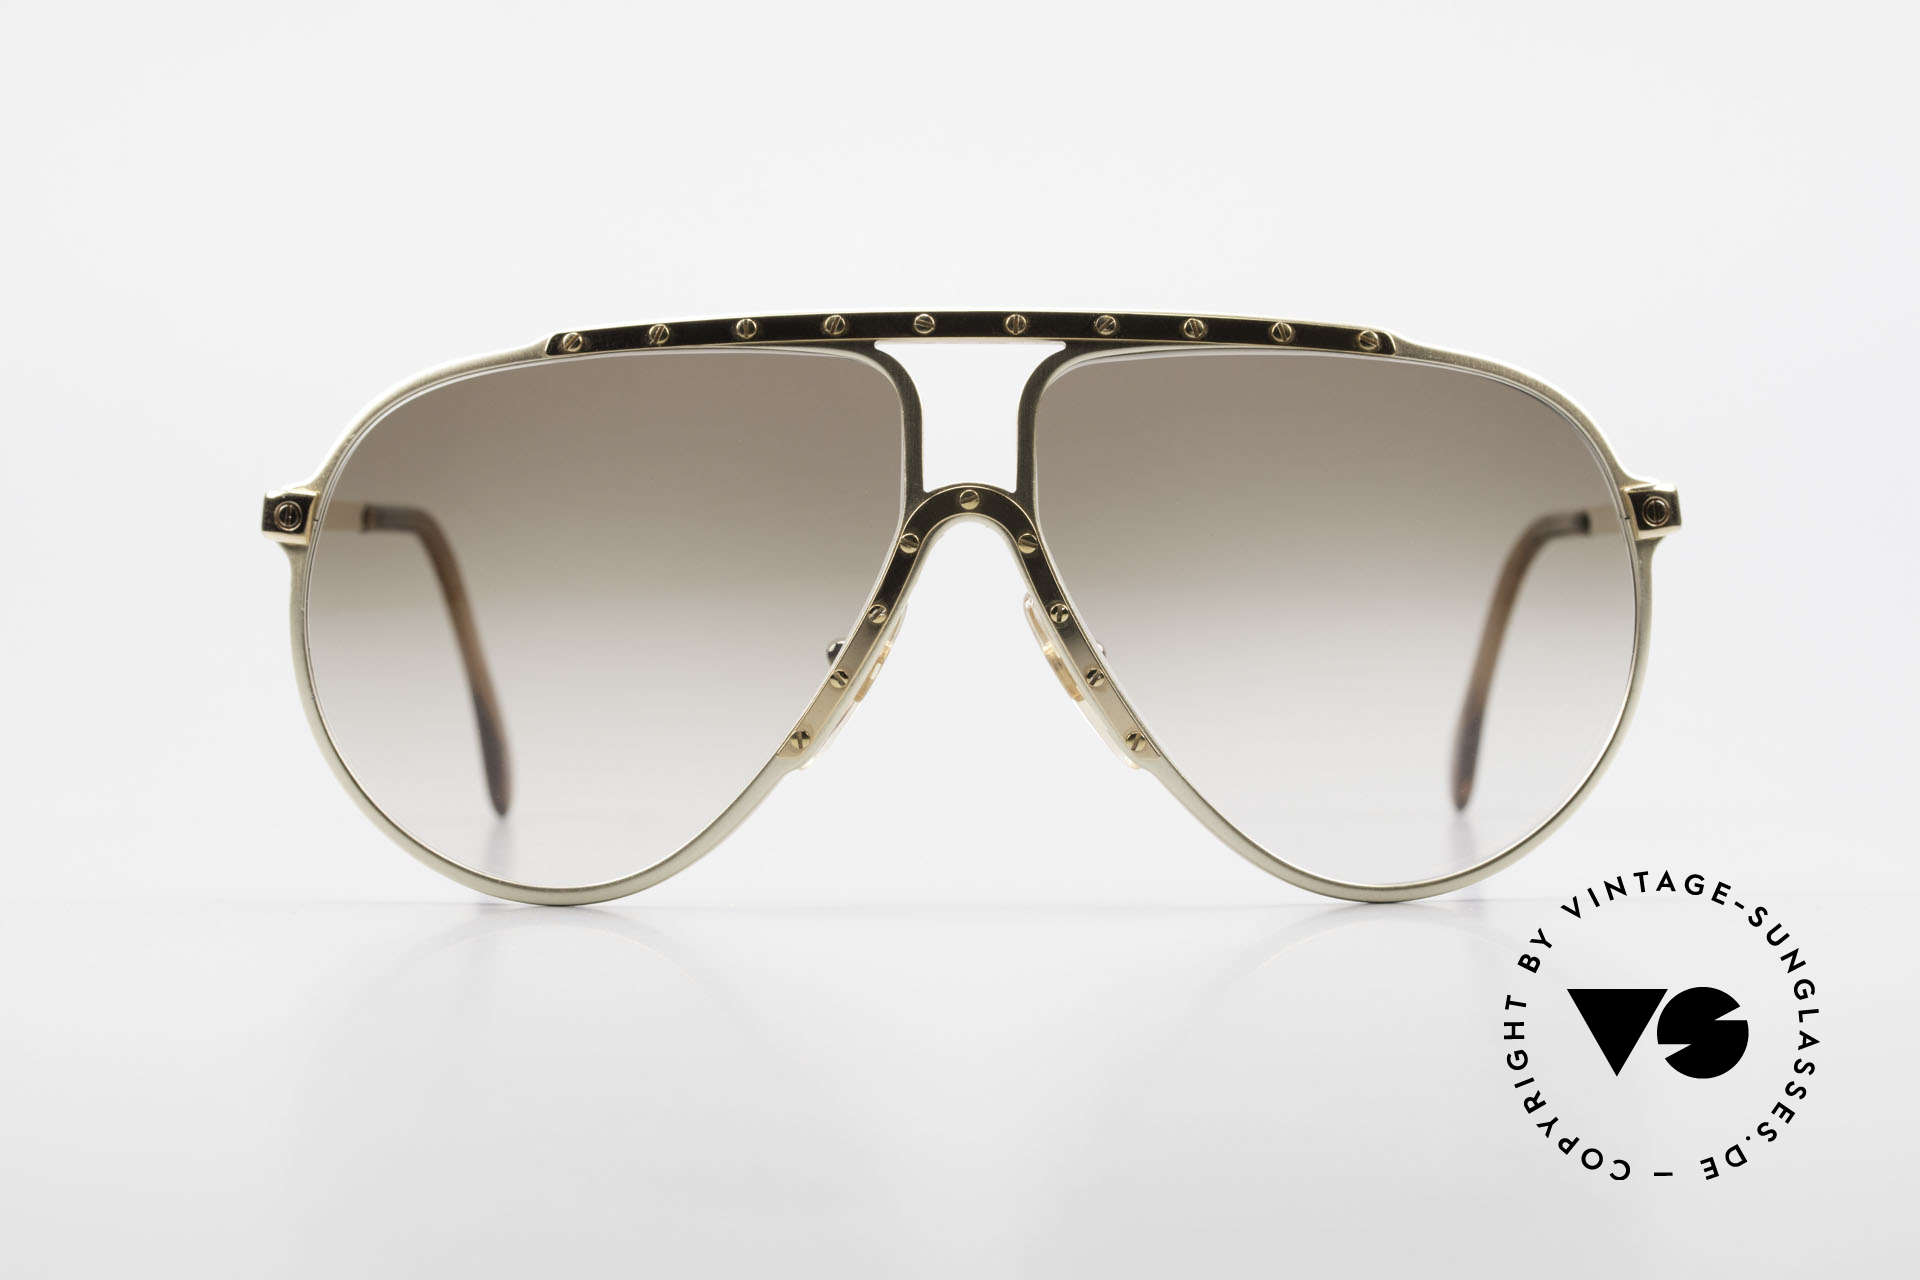 Alpina M1 Limited Edition 80's Version, cult sunglasses and sought-after collector's item!, Made for Men and Women